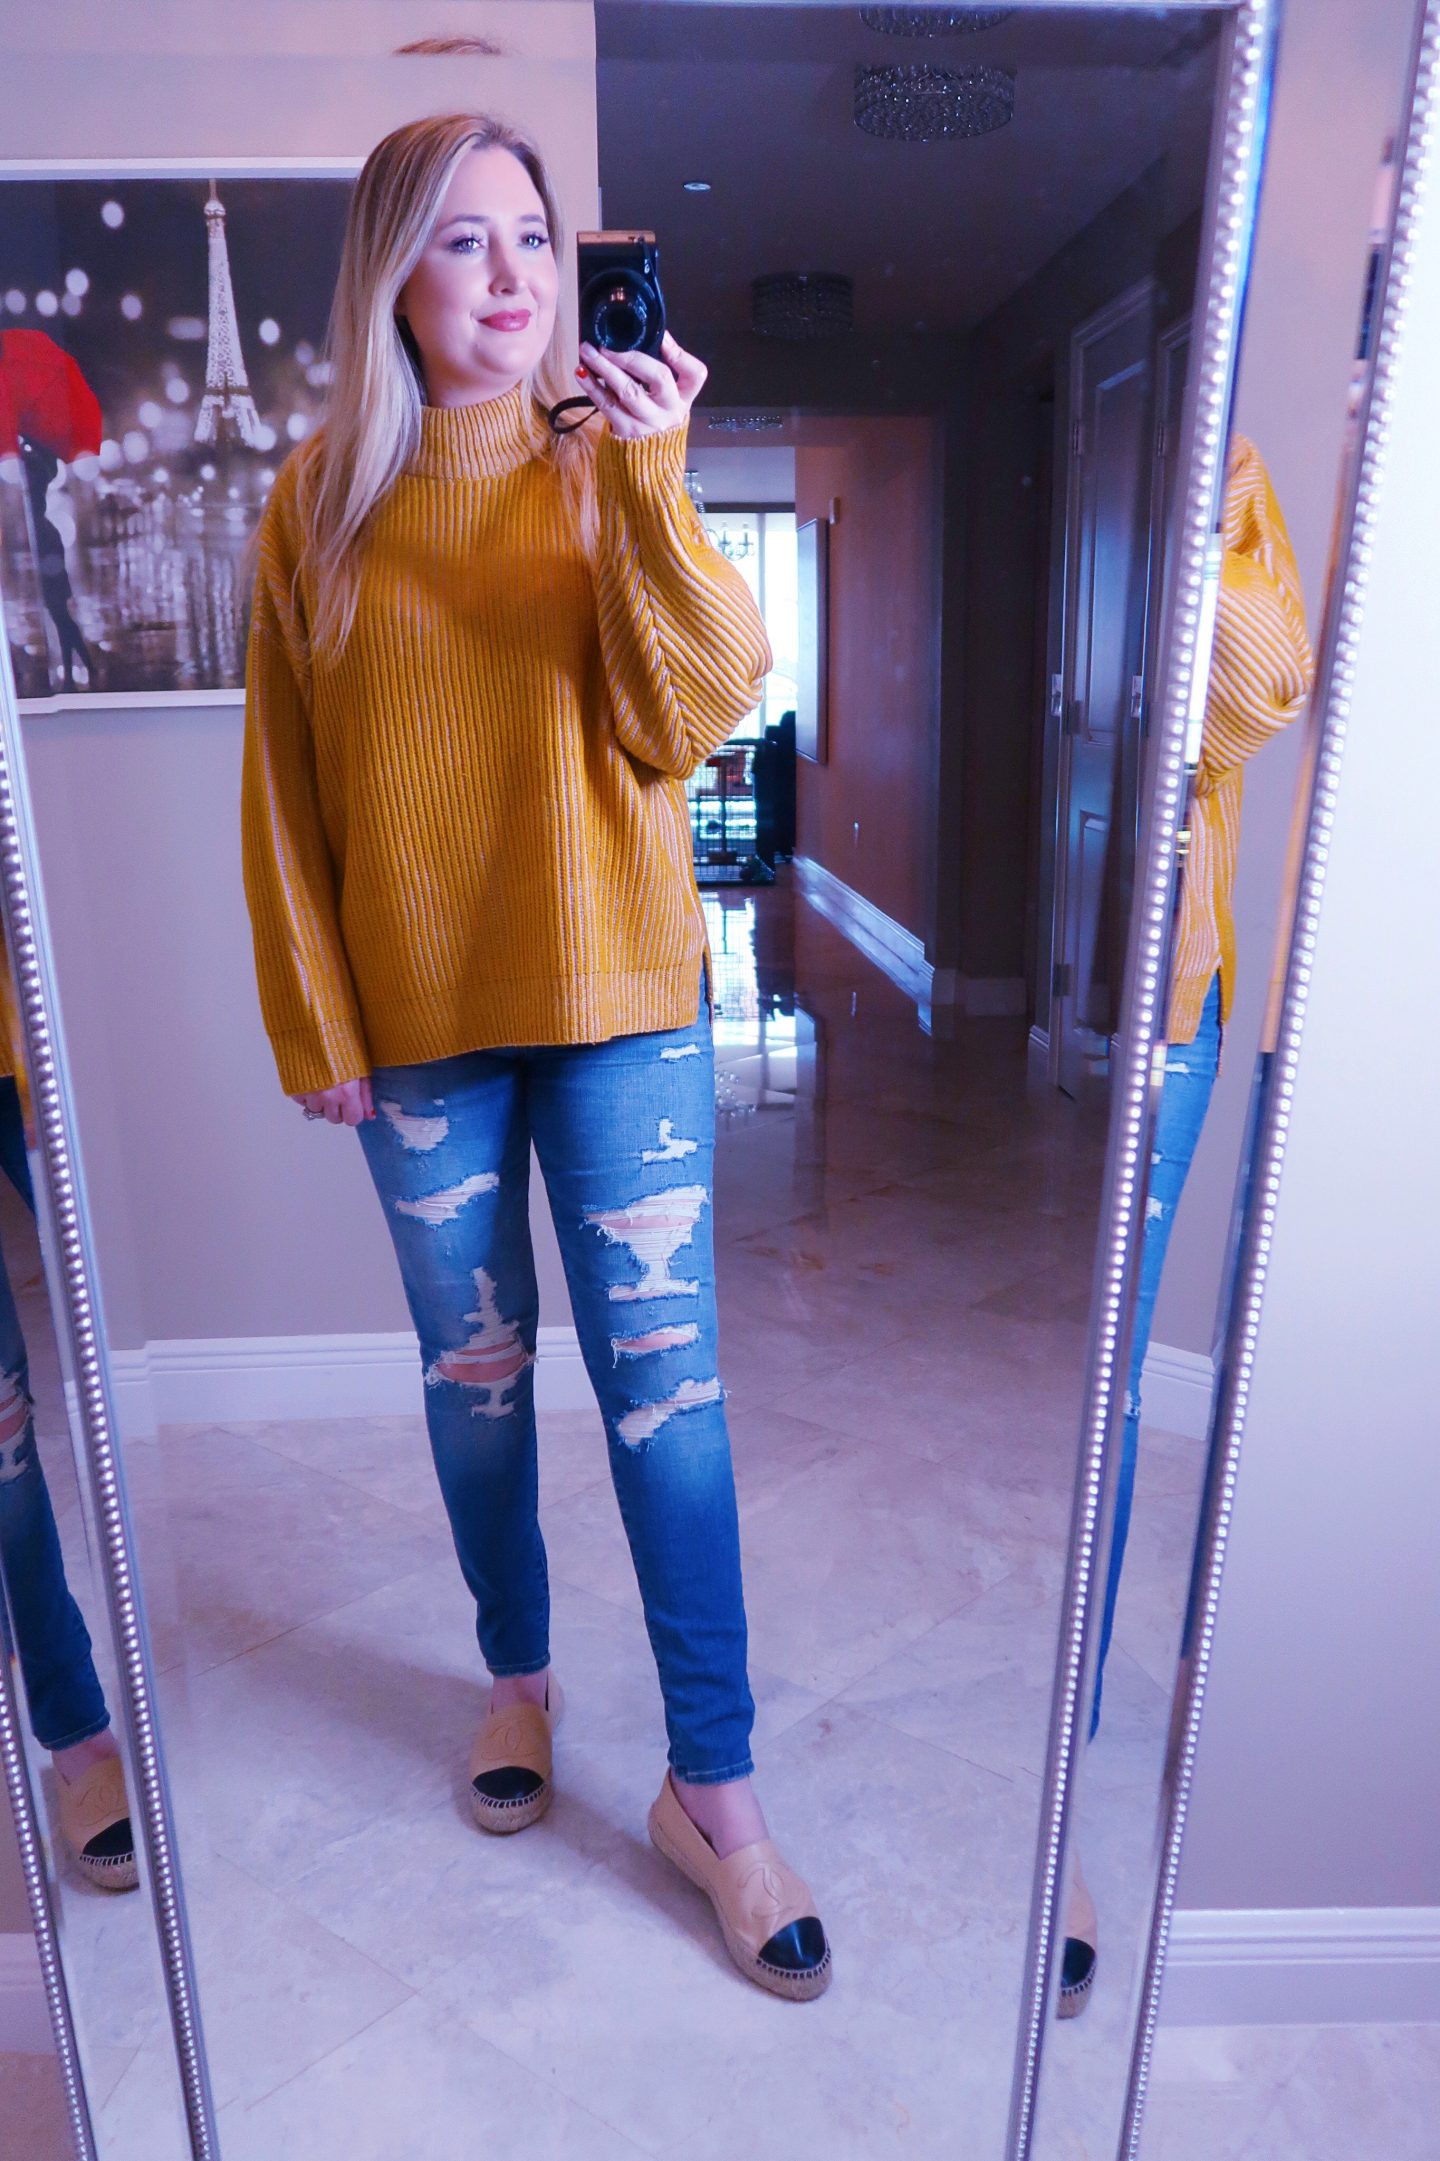 Nordstrom Haul | Everything You Need To Look Good!, nordstrom haul, whats new at nordstrom,, mustard yellow sweater, abercrombie jeans, chanel espadrilles, casual fall outfit